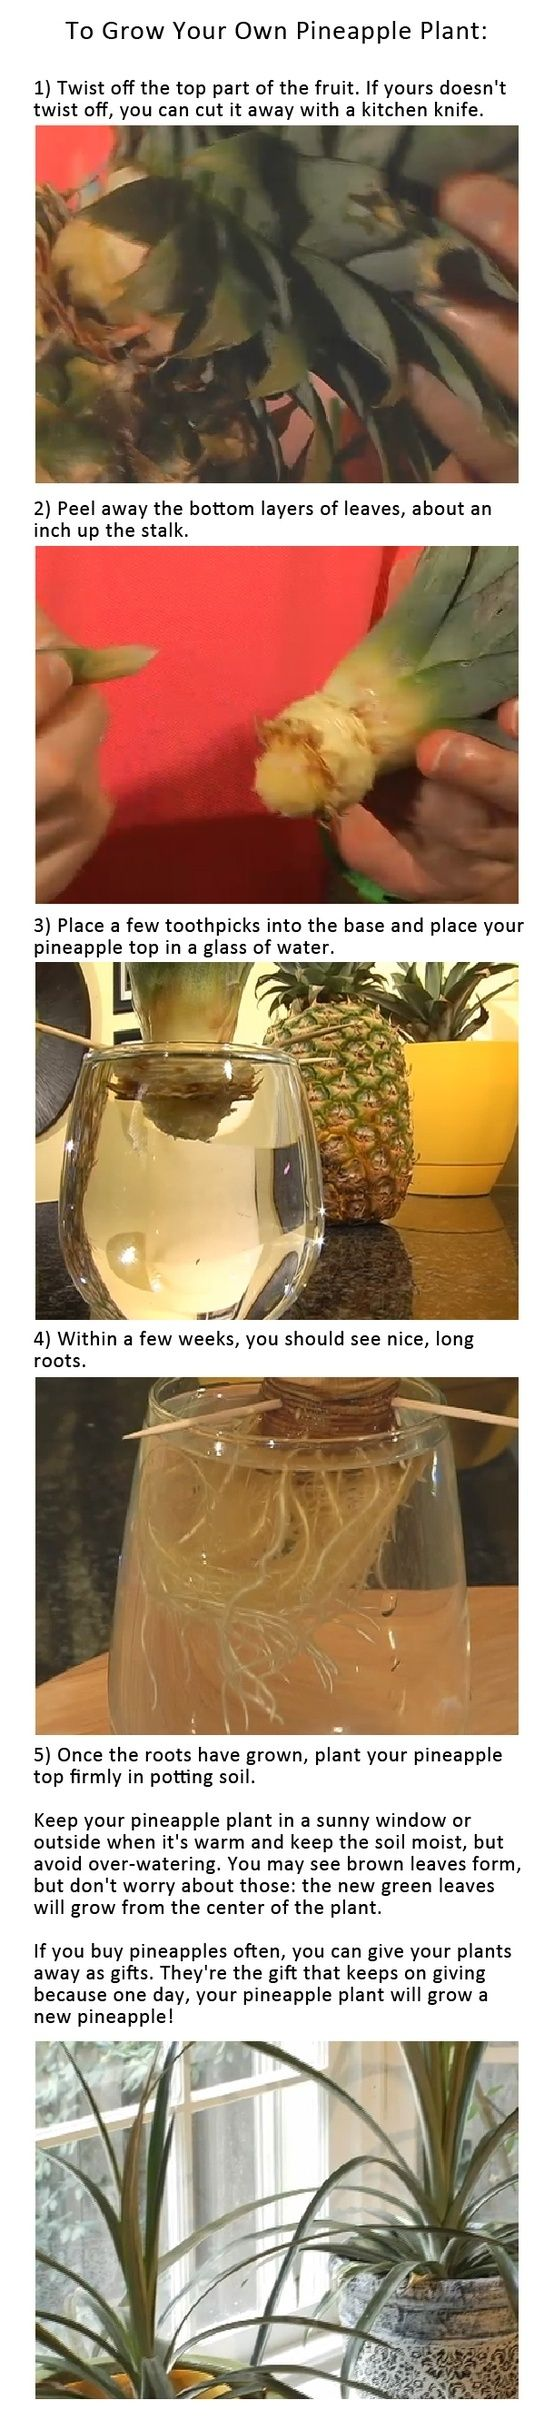 How to regrow pineapple...hmmm trying this one out